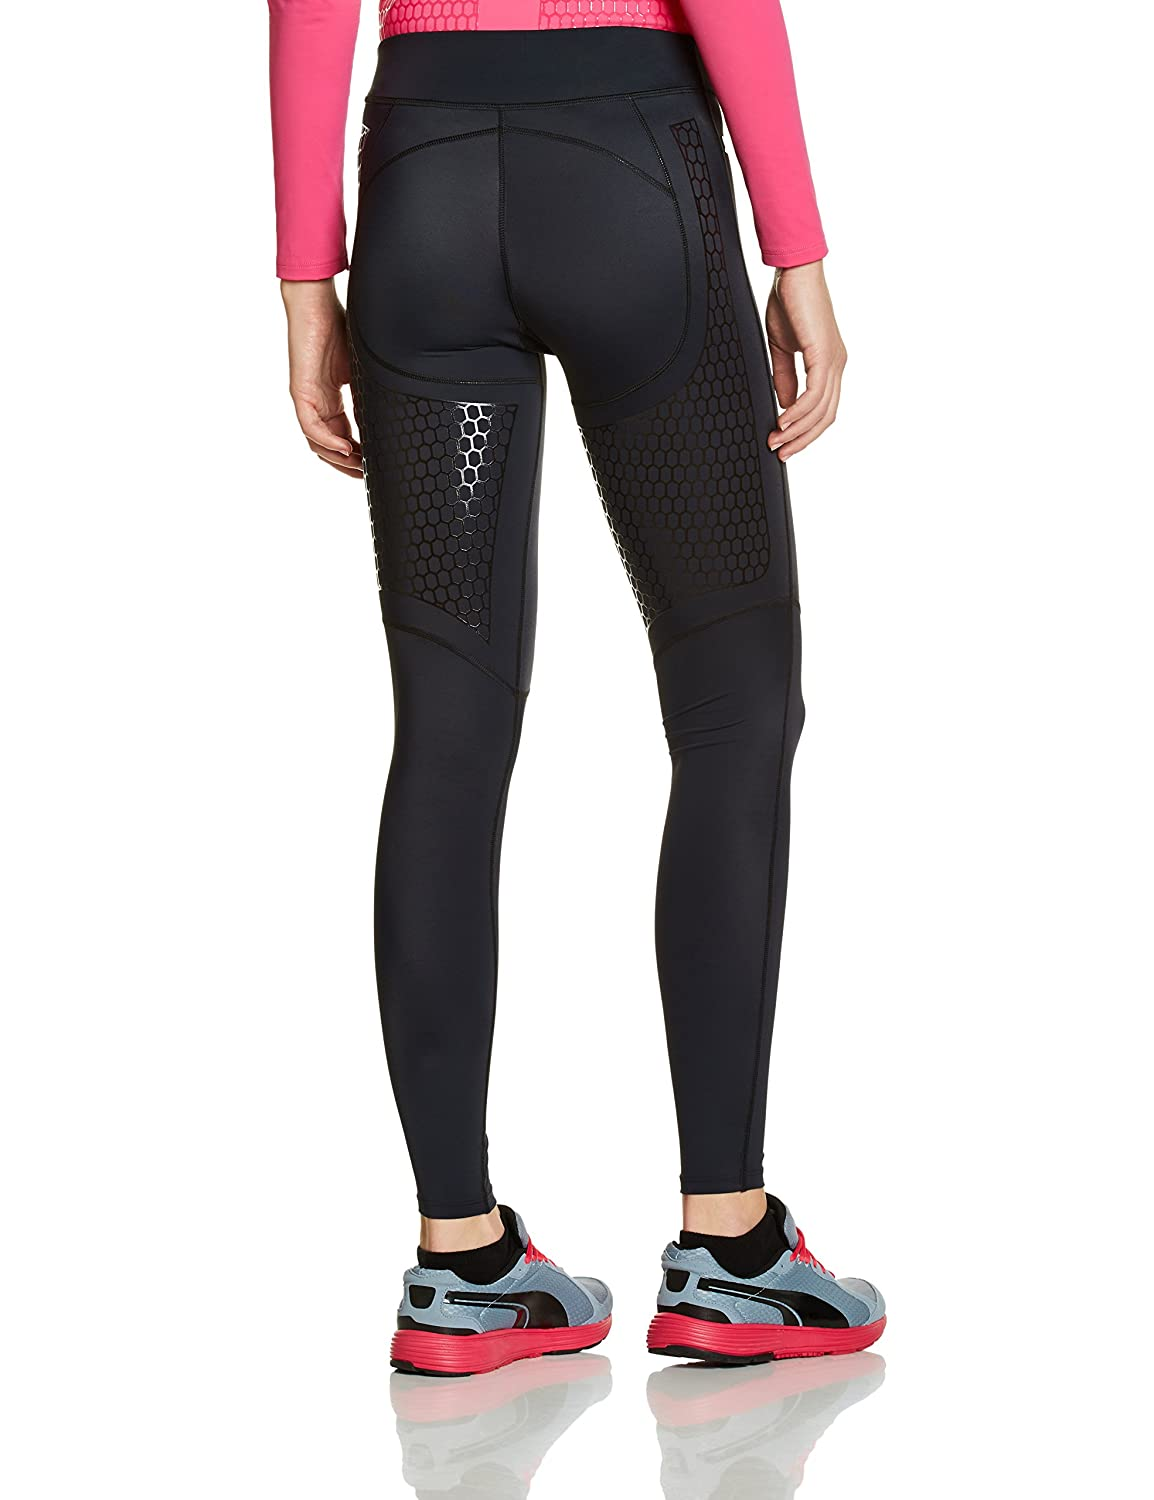 92ac799b433838 Shock Absorber Women's Ultimate Body Support Length Tights - Black,  X-Small: Amazon.co.uk: Clothing